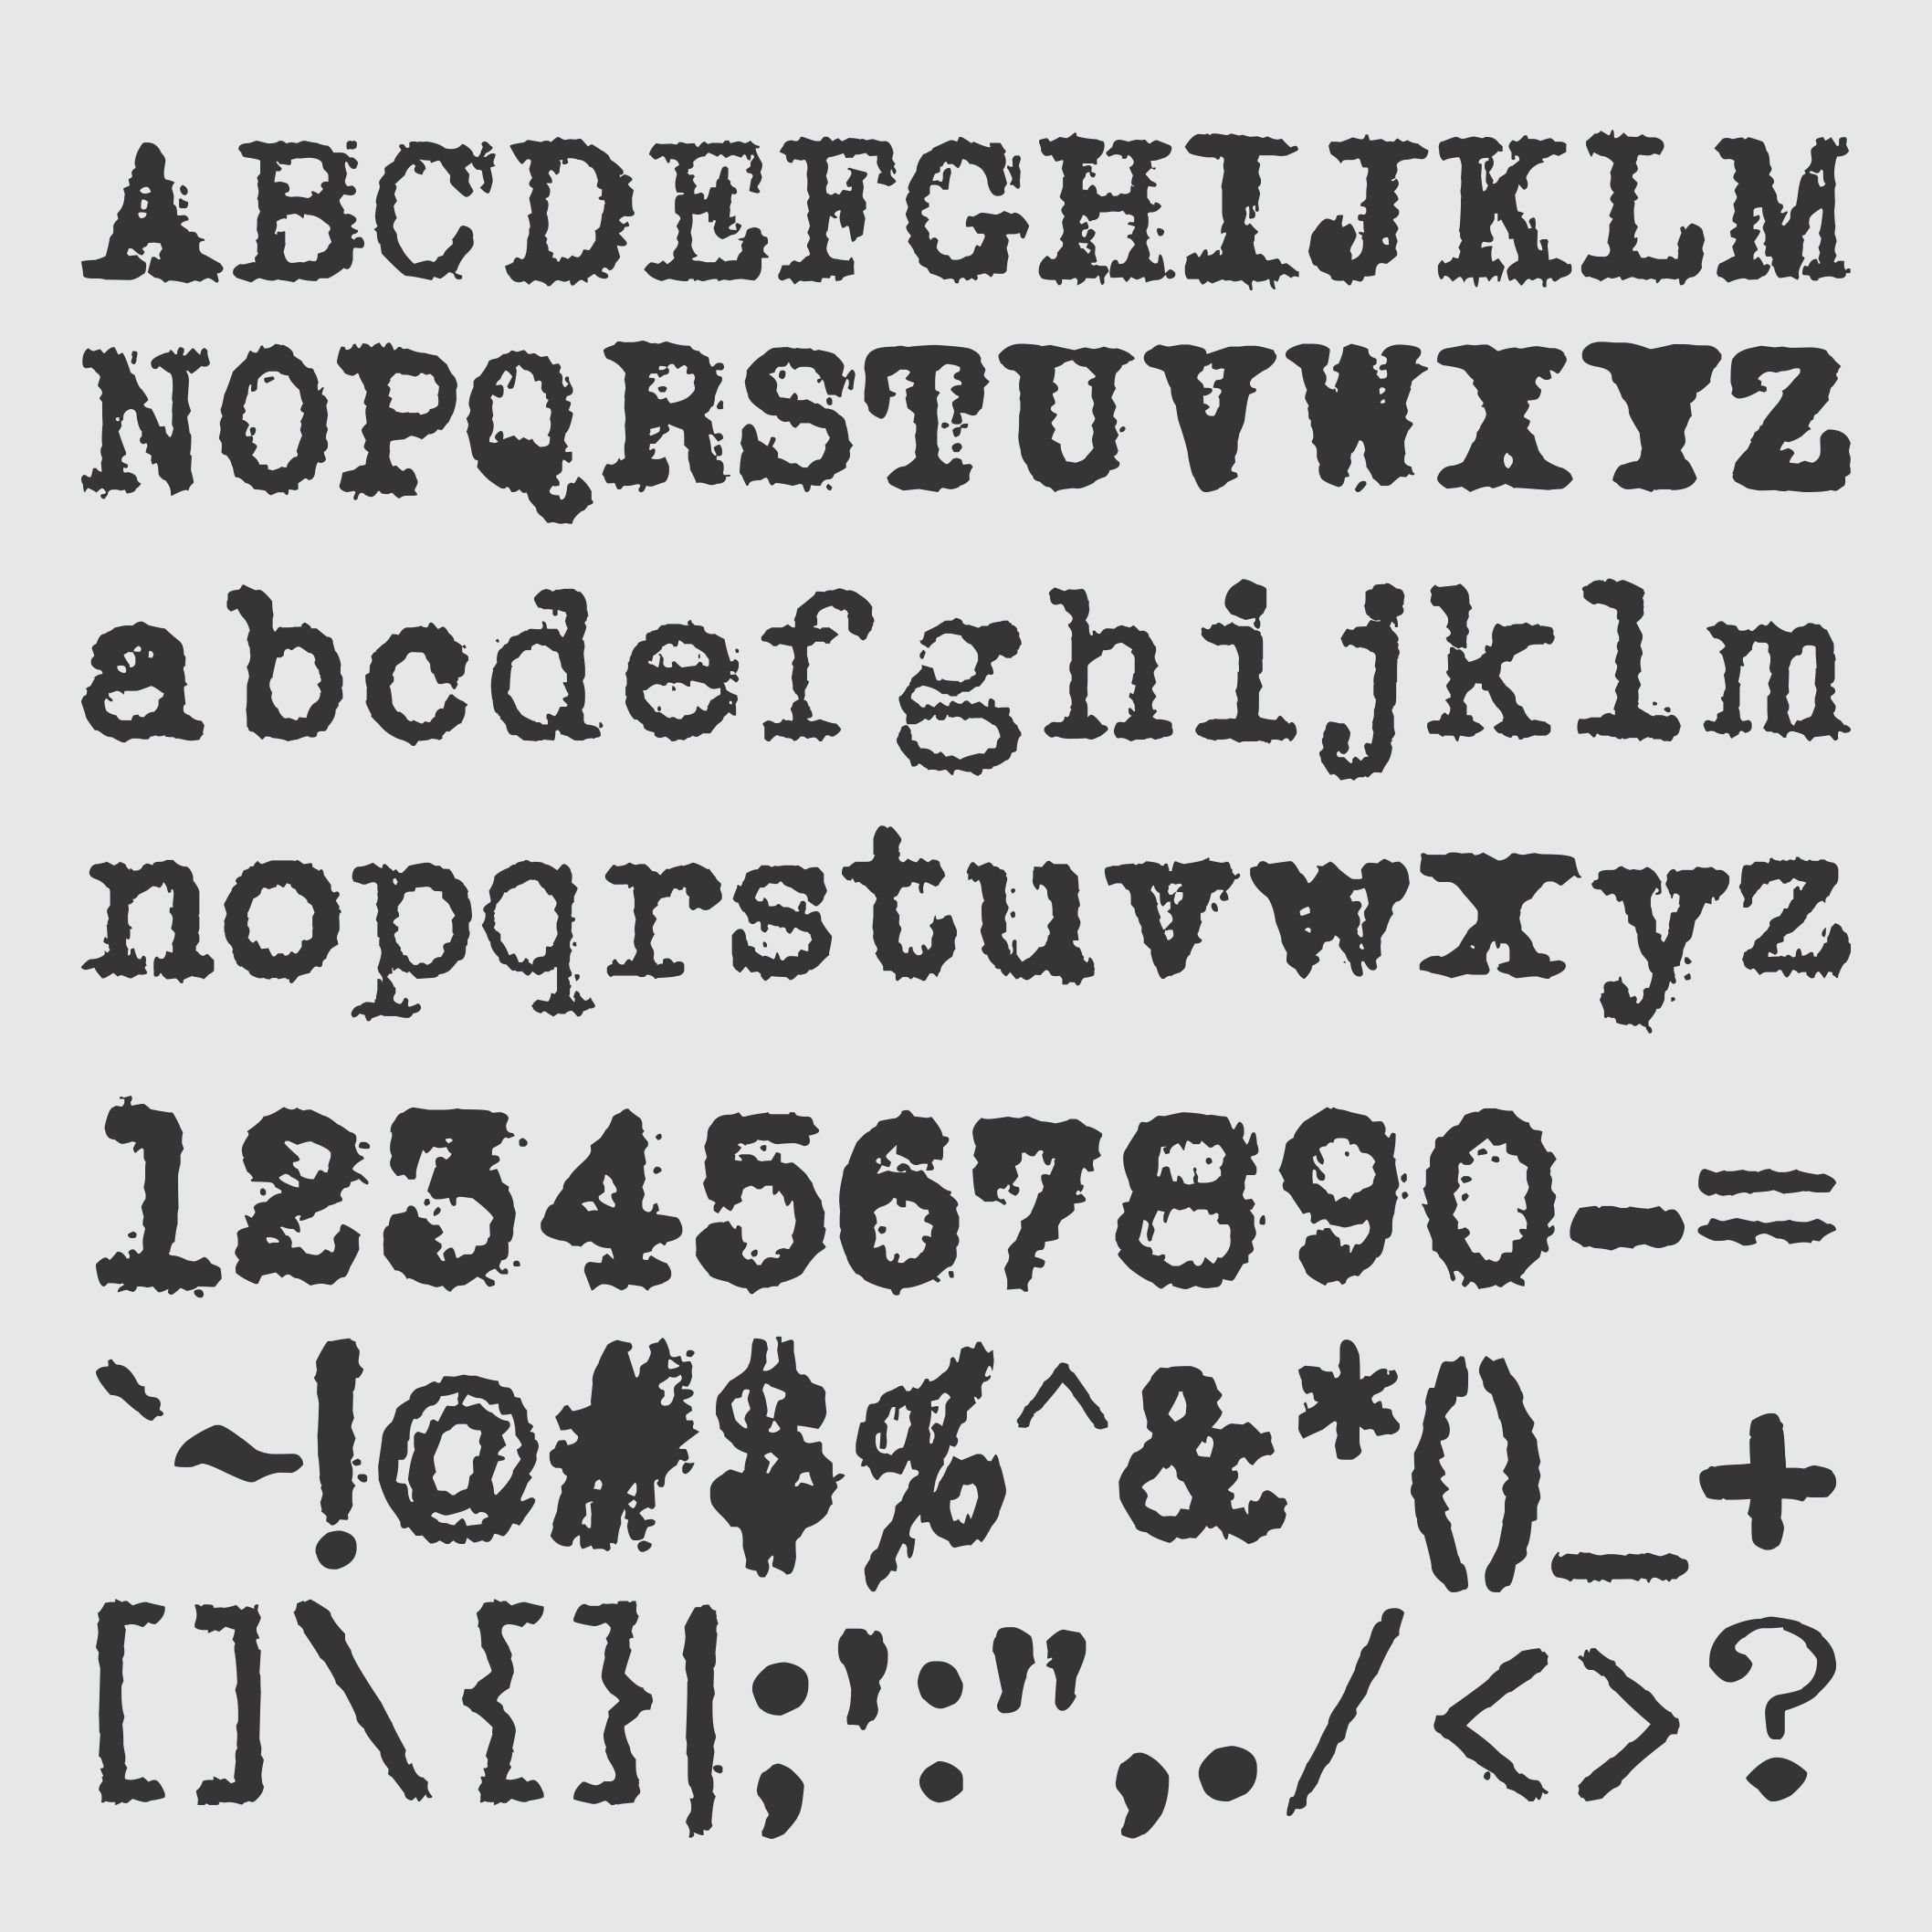 Joe Underwood Typewriter Font - Phelan Riessen